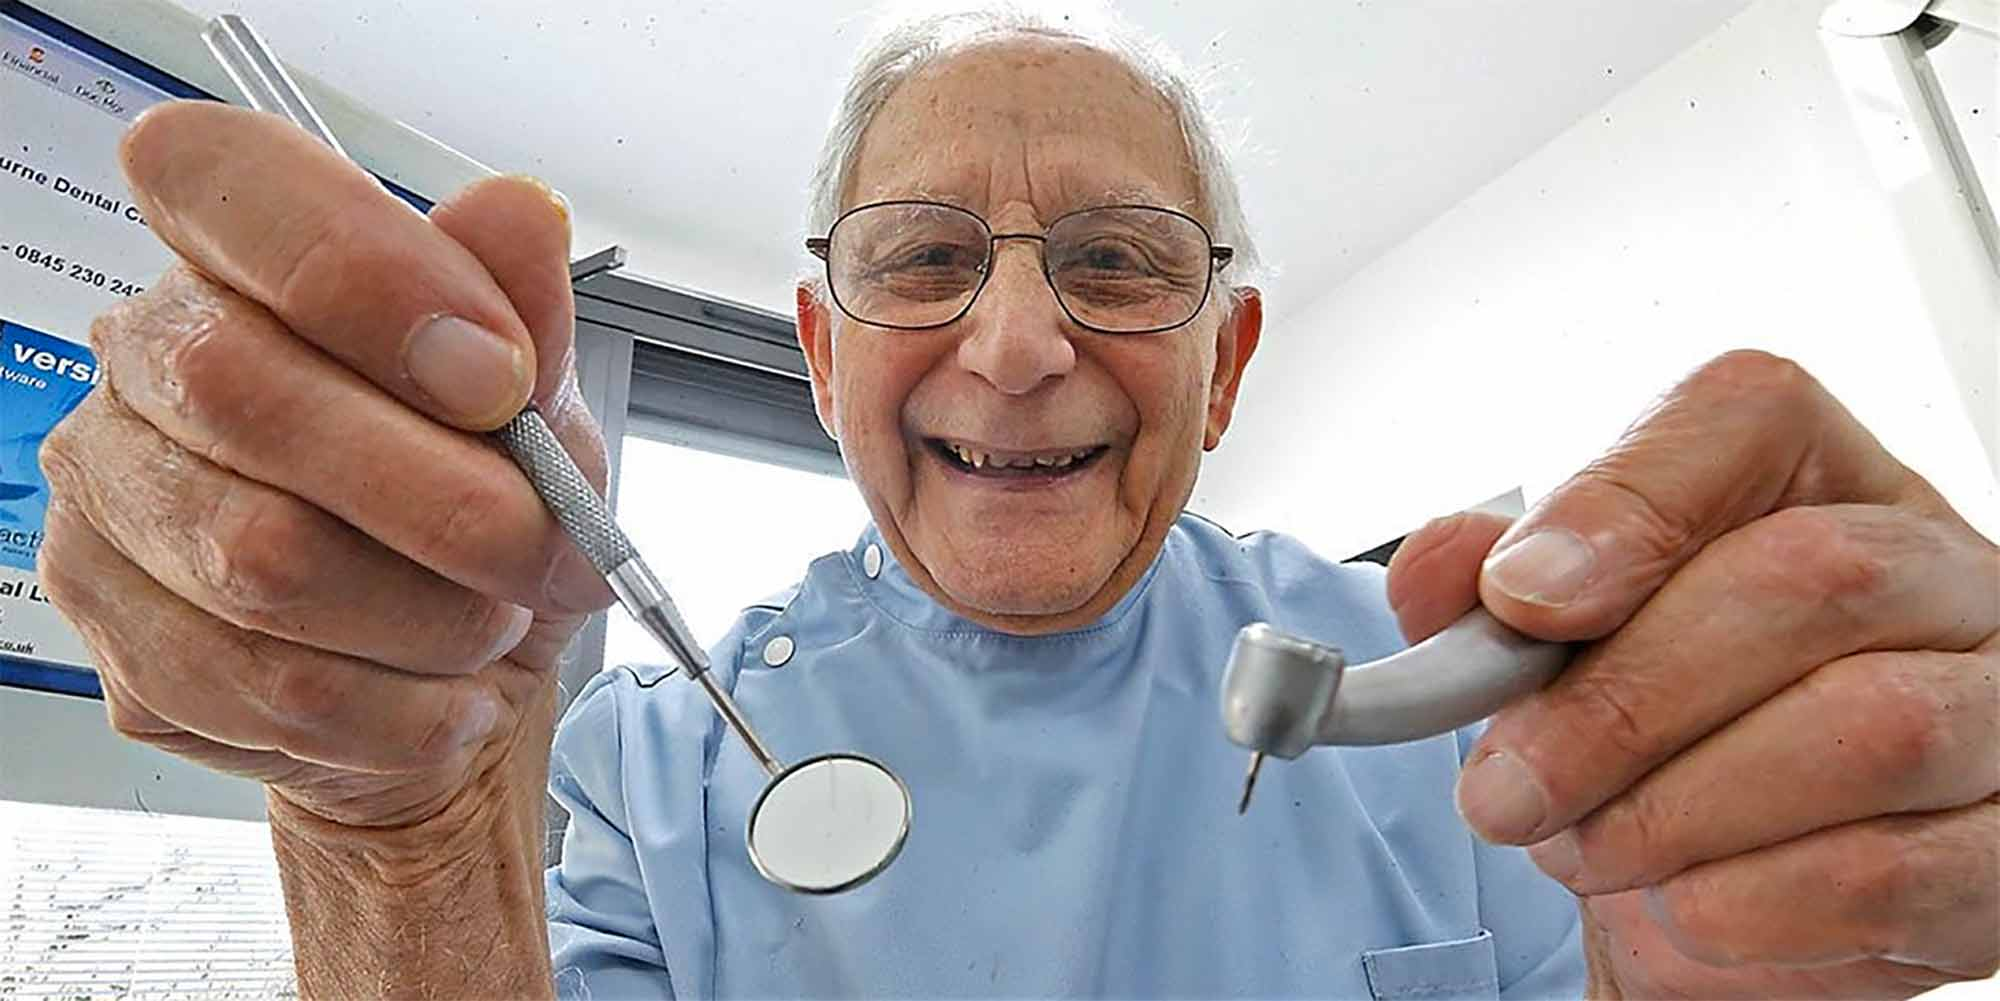 Dr Harry Olmer will talk about his experience as a holocaust survivor and dentist